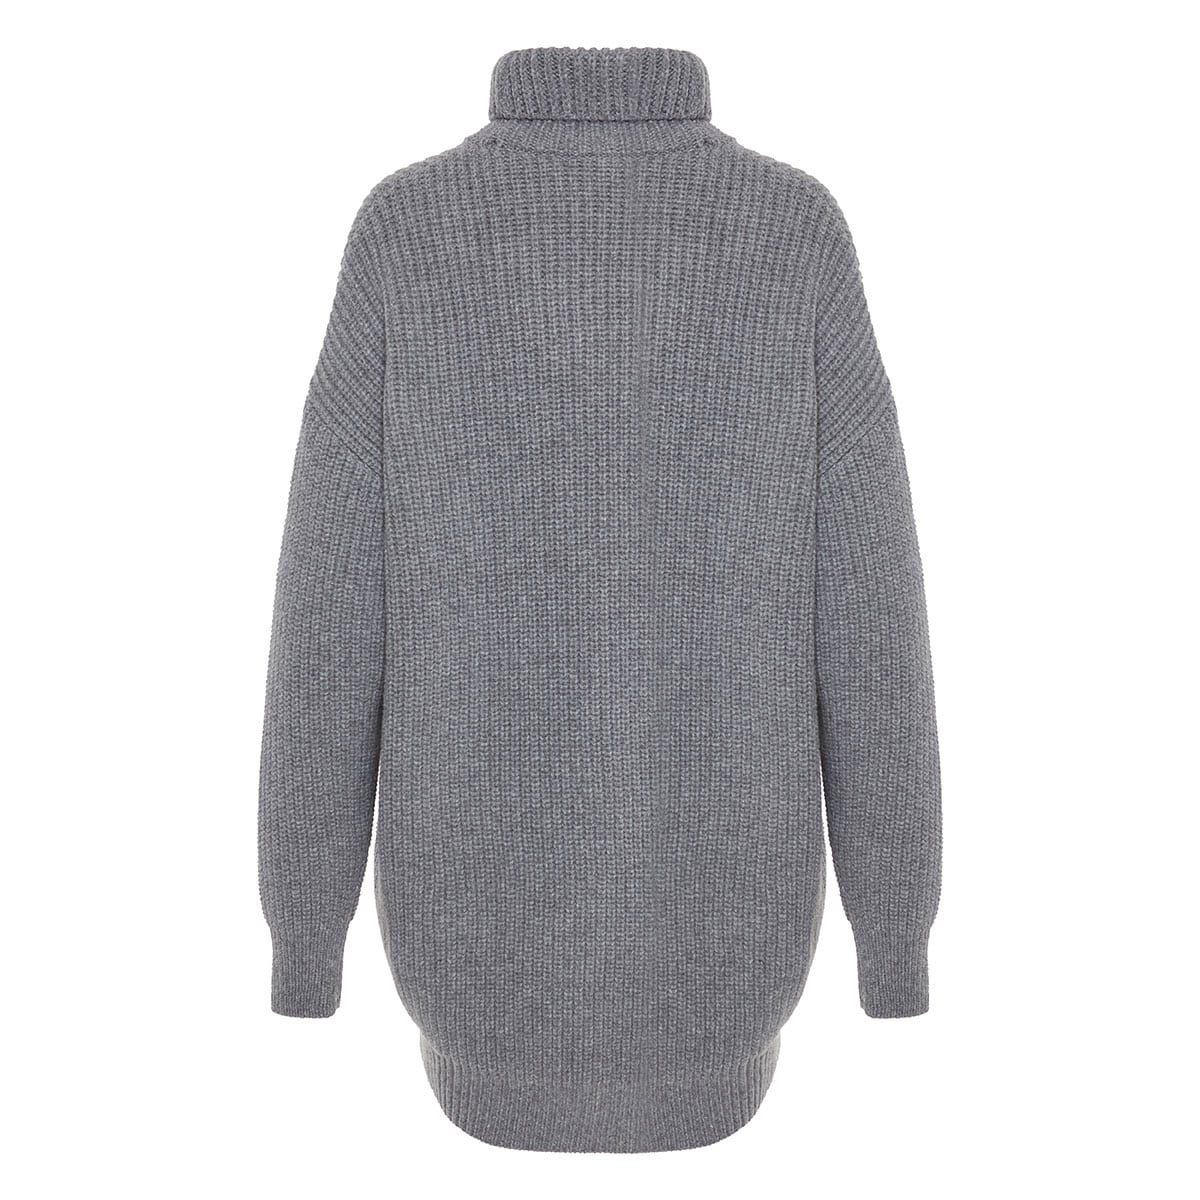 Oversized ribbed-knit sweater